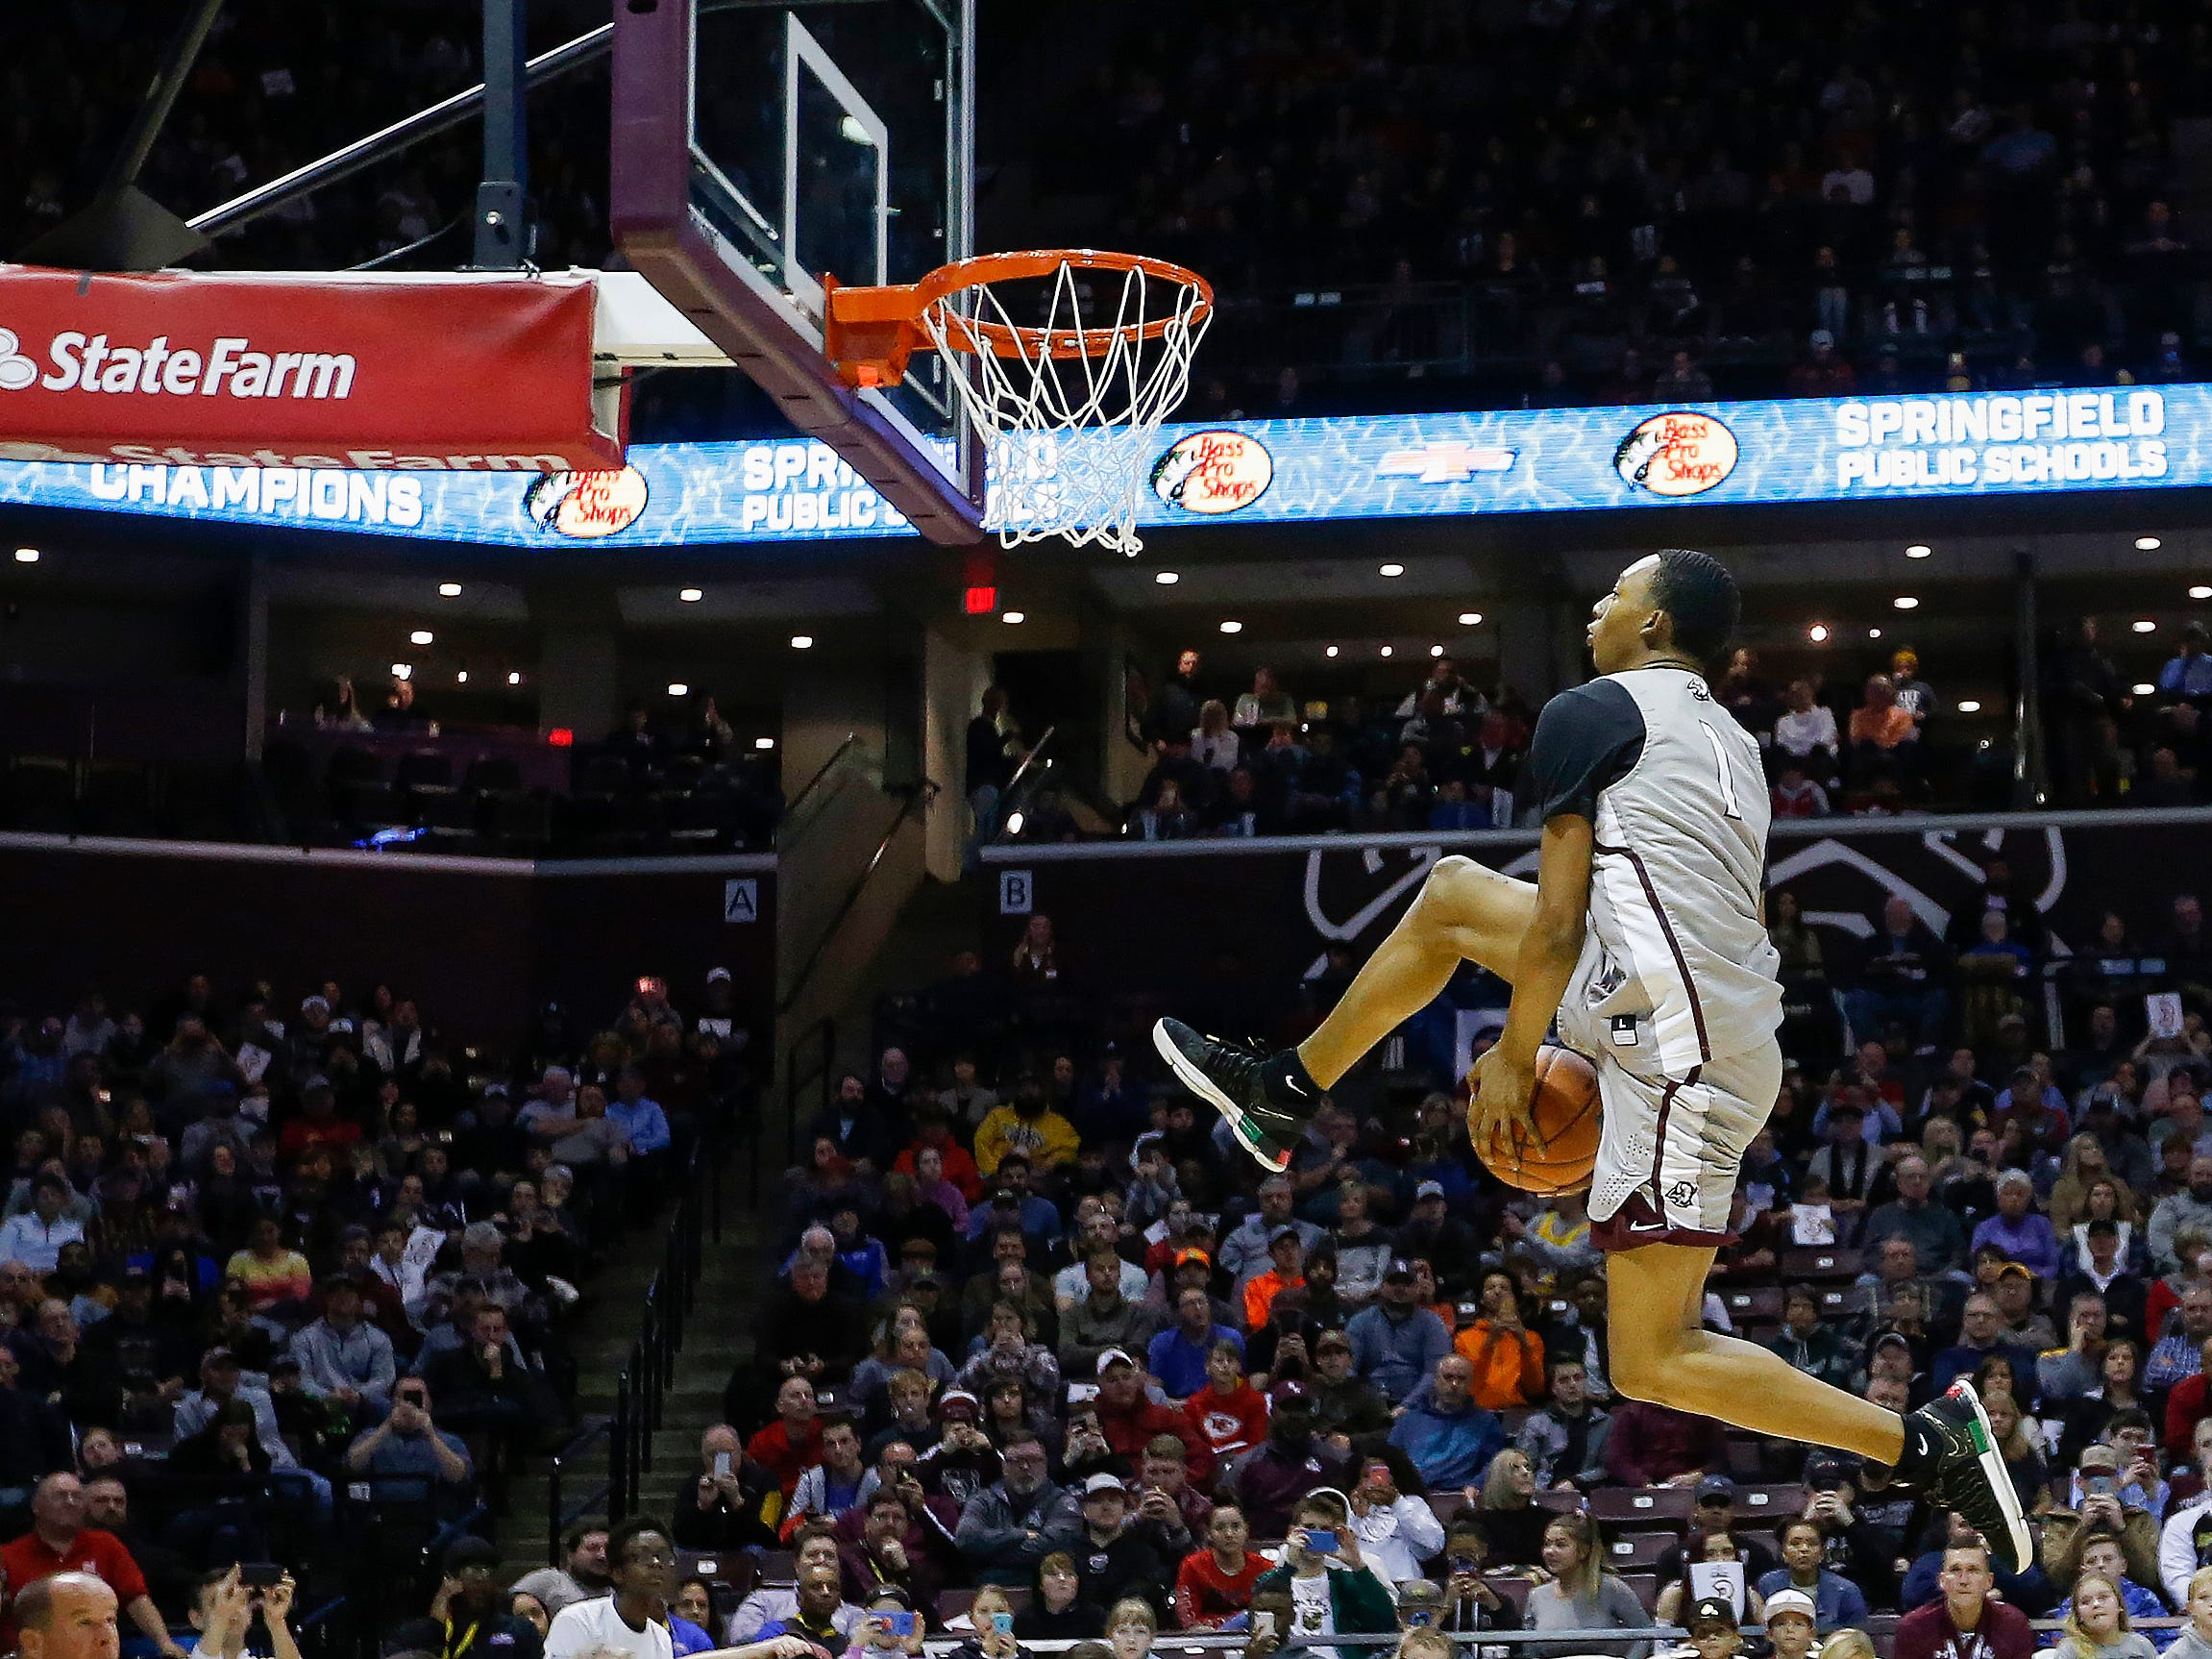 Austin Crowley, of Shadow Mountain, scored a perfect 80 in the preliminary round of the slam dunk contest at the Bass Pro Shops Tournament of Champions at JQH Arena on Saturday, Jan. 19, 2019.